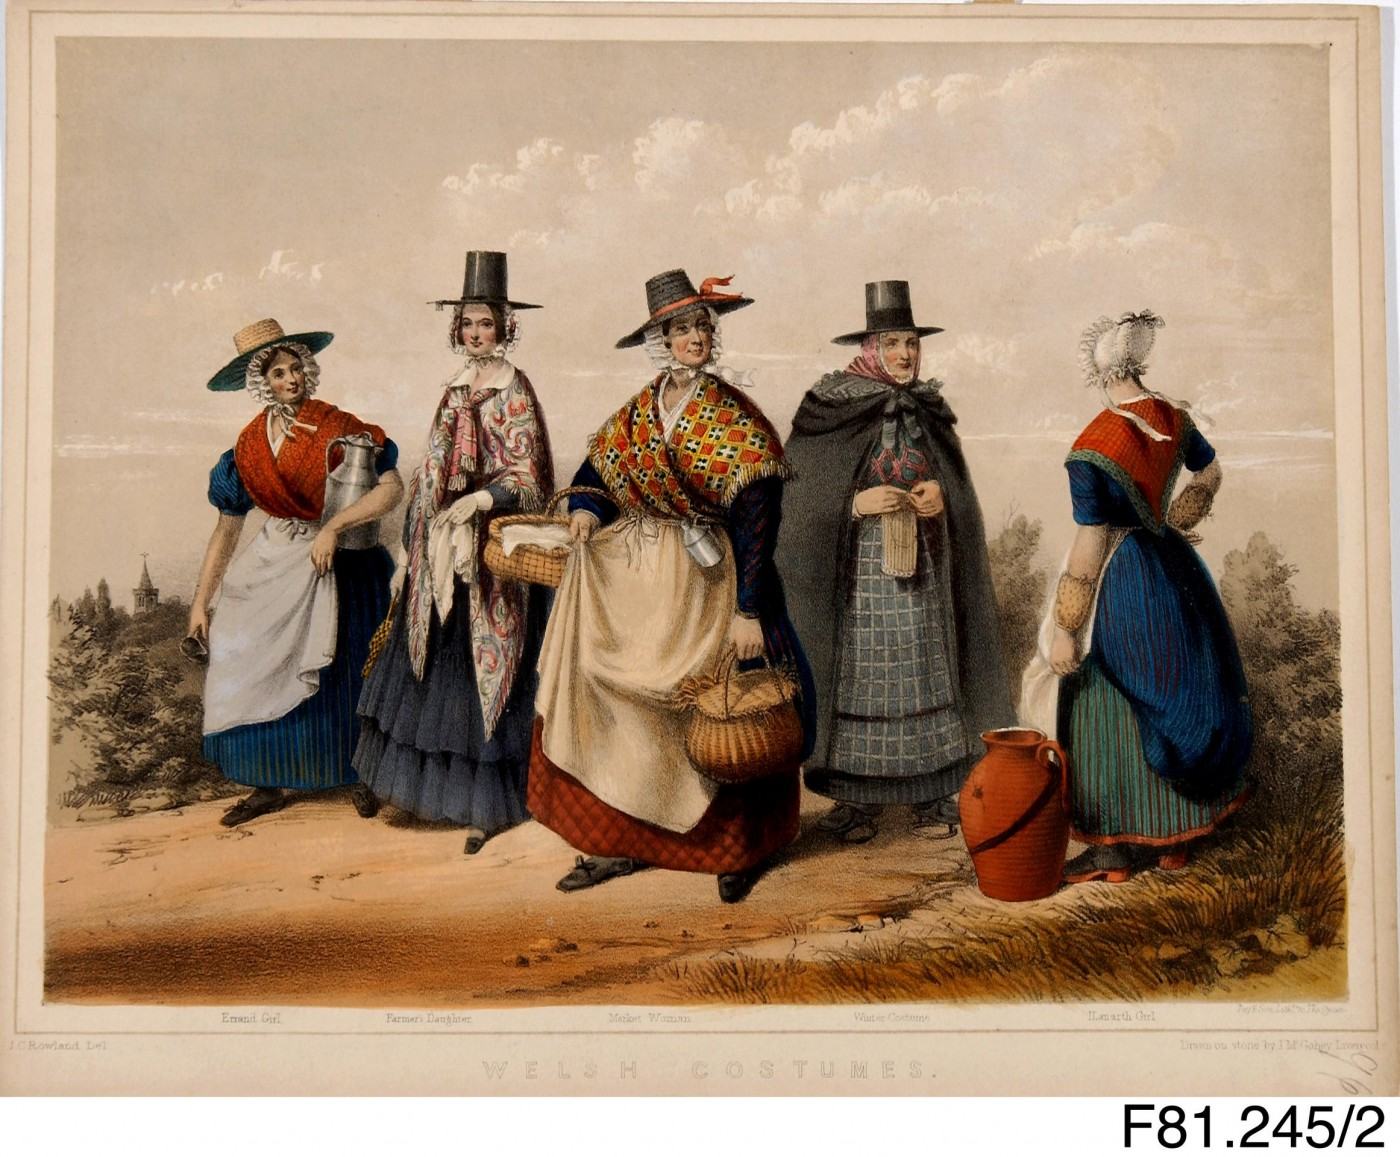 3:Welsh Costume Illustration from 1848. Artist: Rowland, John Cambrian. Image courtesy of National Museum Wales. F81.245.2